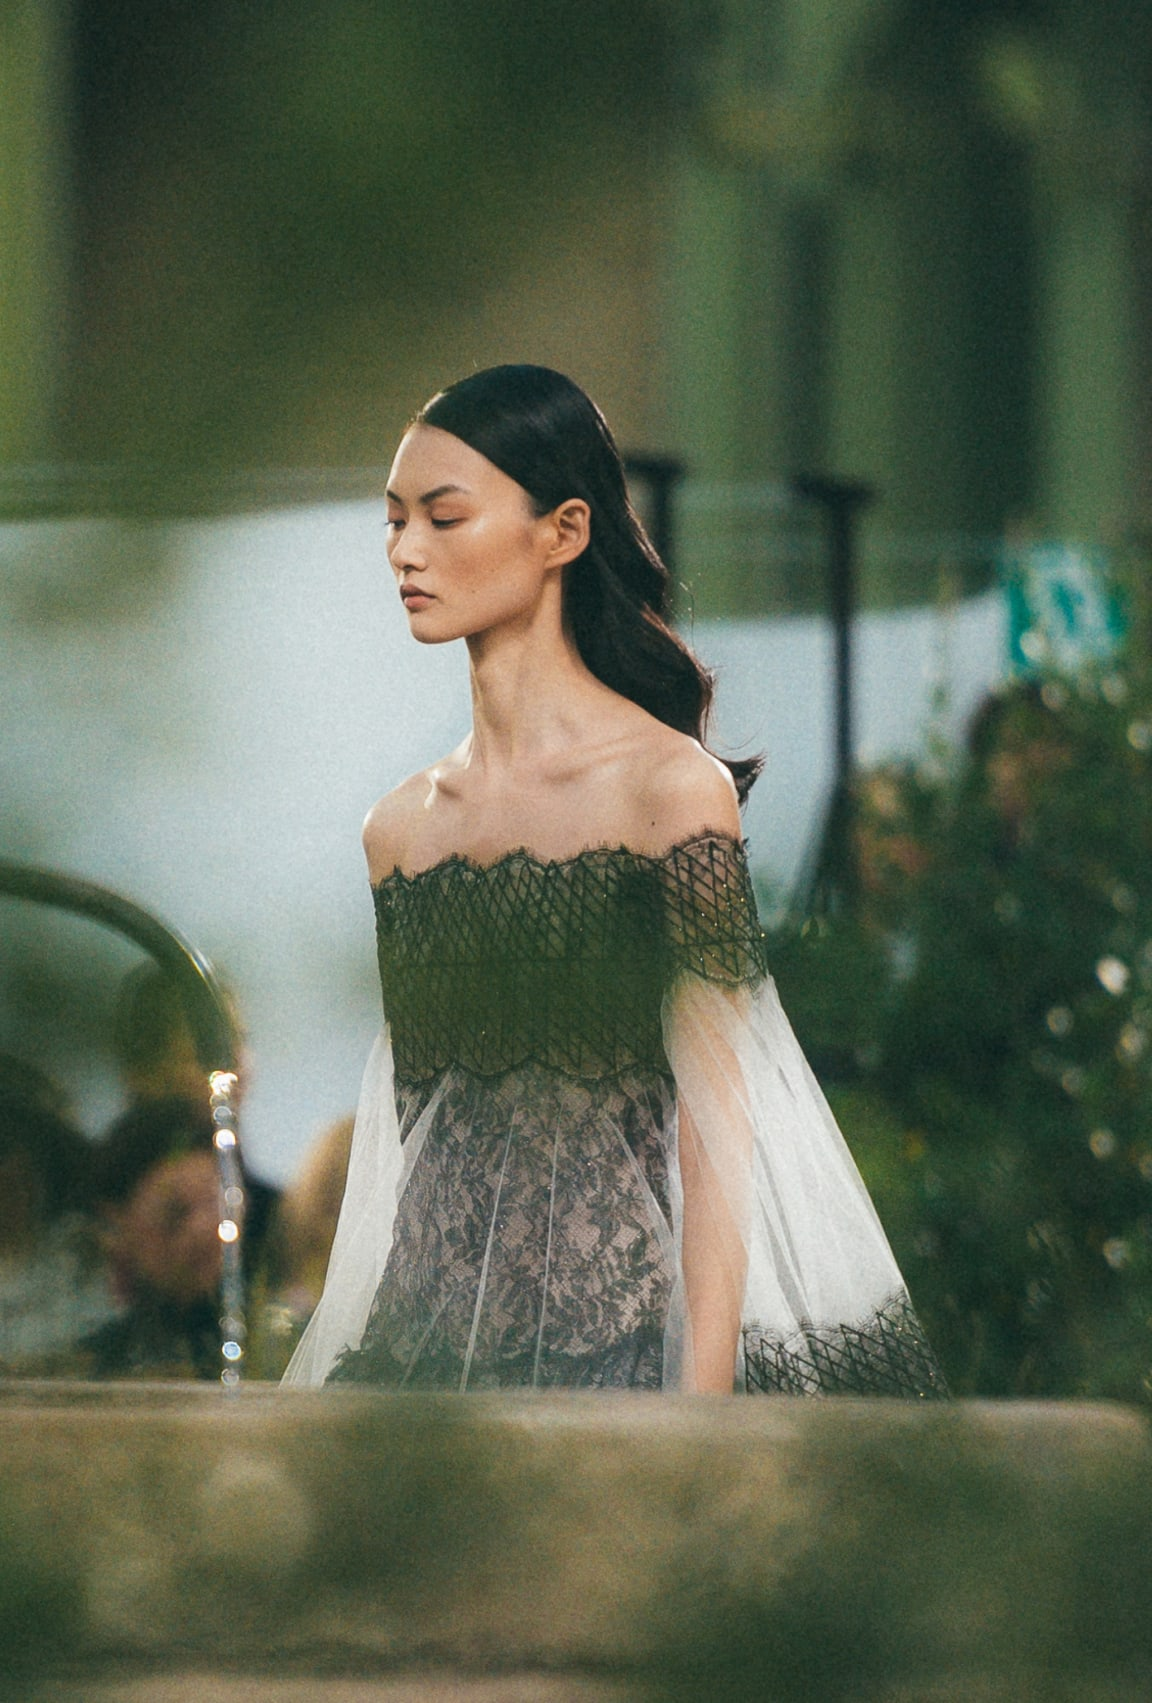 View 6 - Look 56 - Spring-Summer 2020 Haute Couture - see full sized version